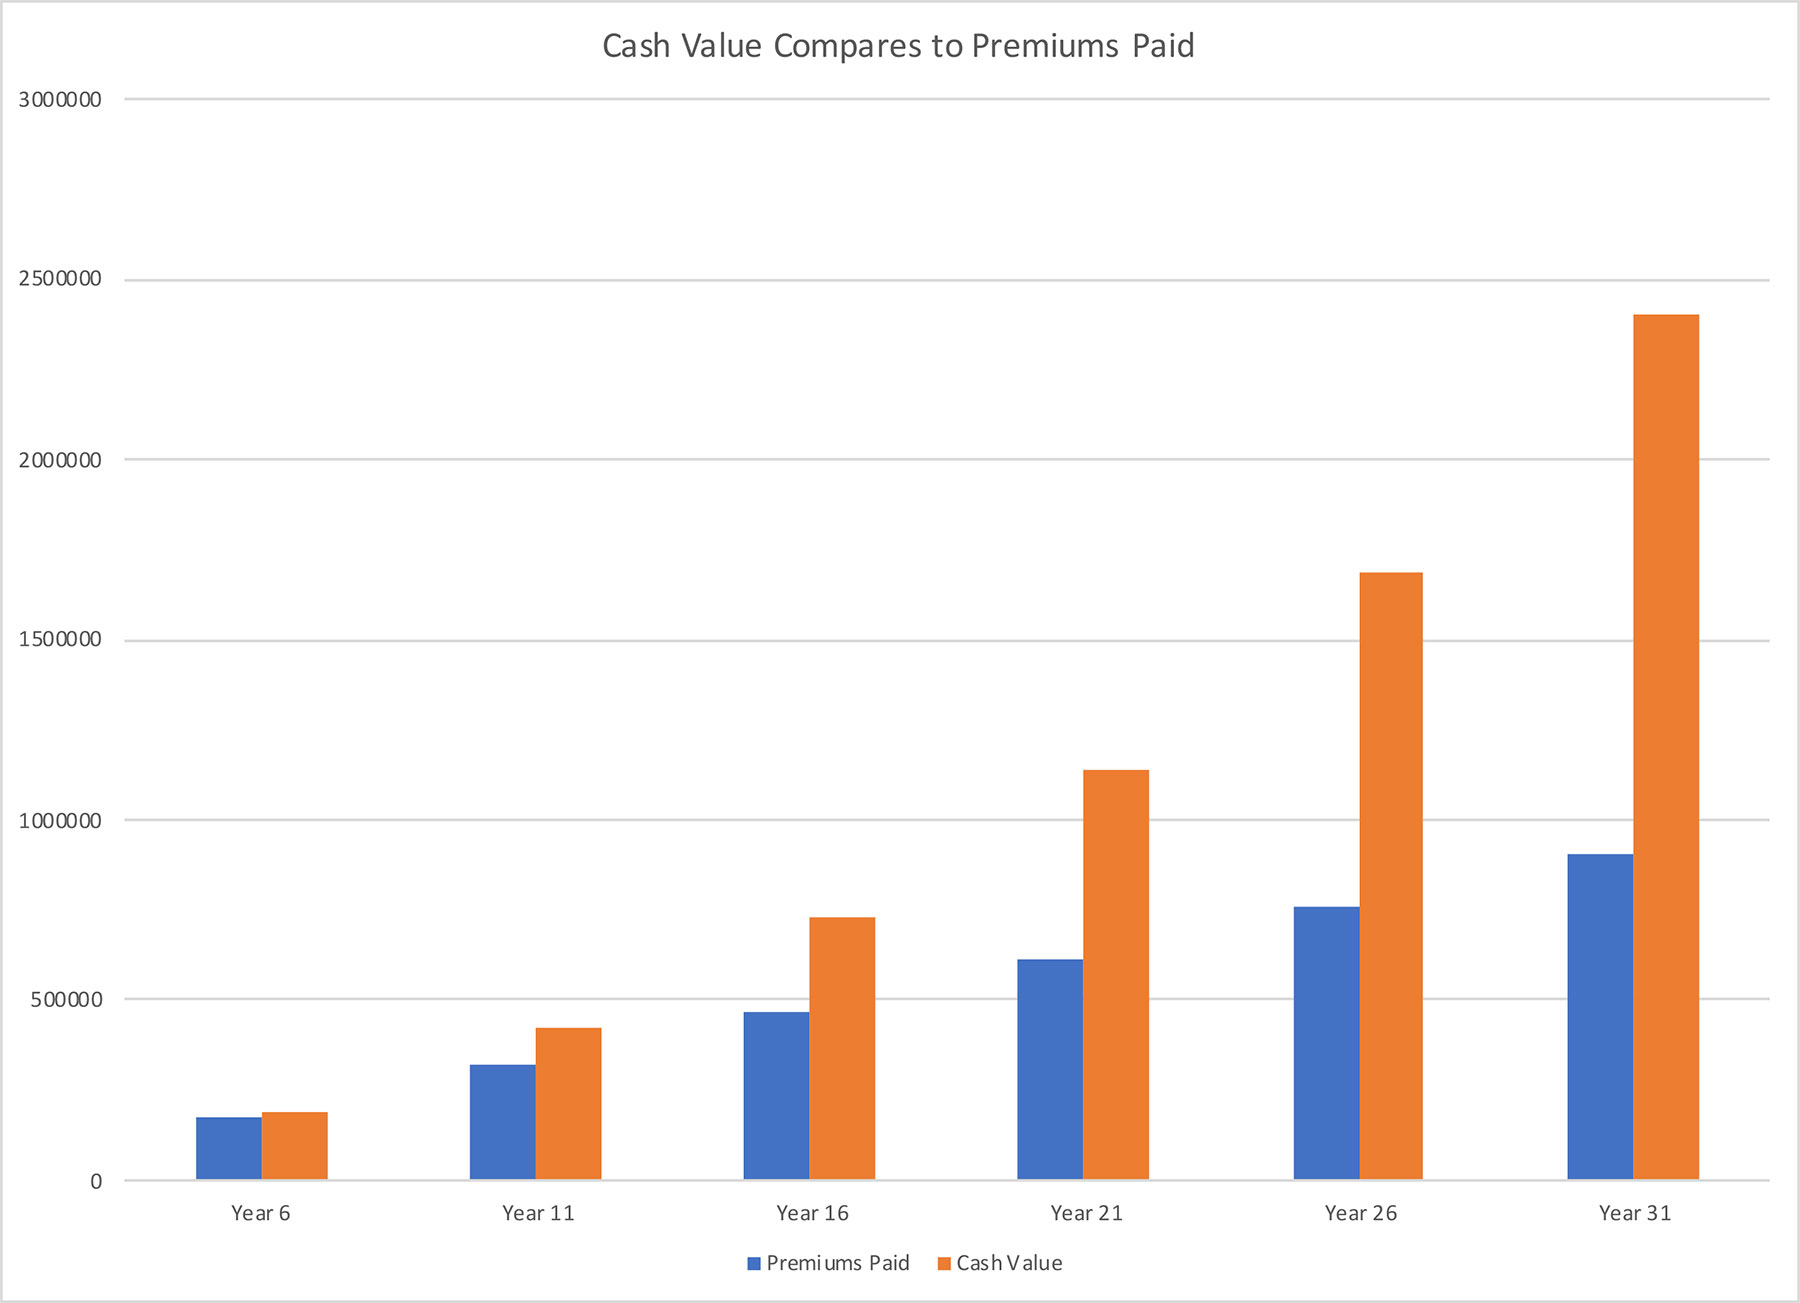 Whole Life Investment Comparing Premiums to Cash Value